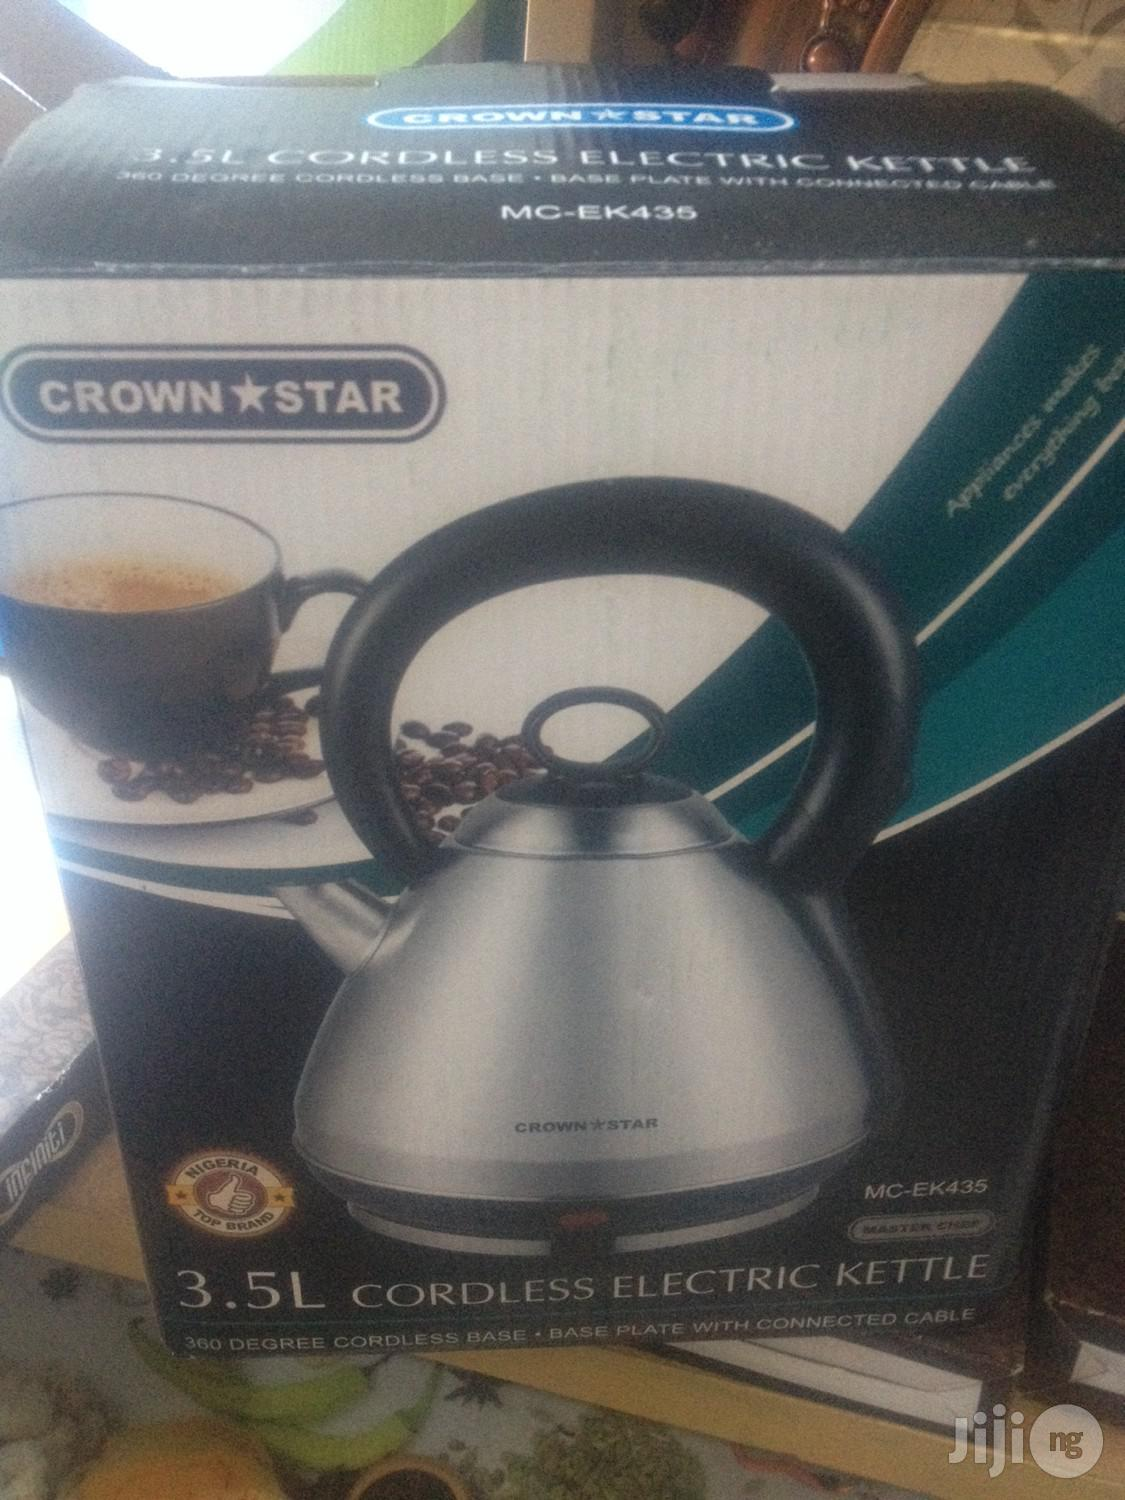 Electric Kettle | Kitchen Appliances for sale in Wuse, Abuja (FCT) State, Nigeria